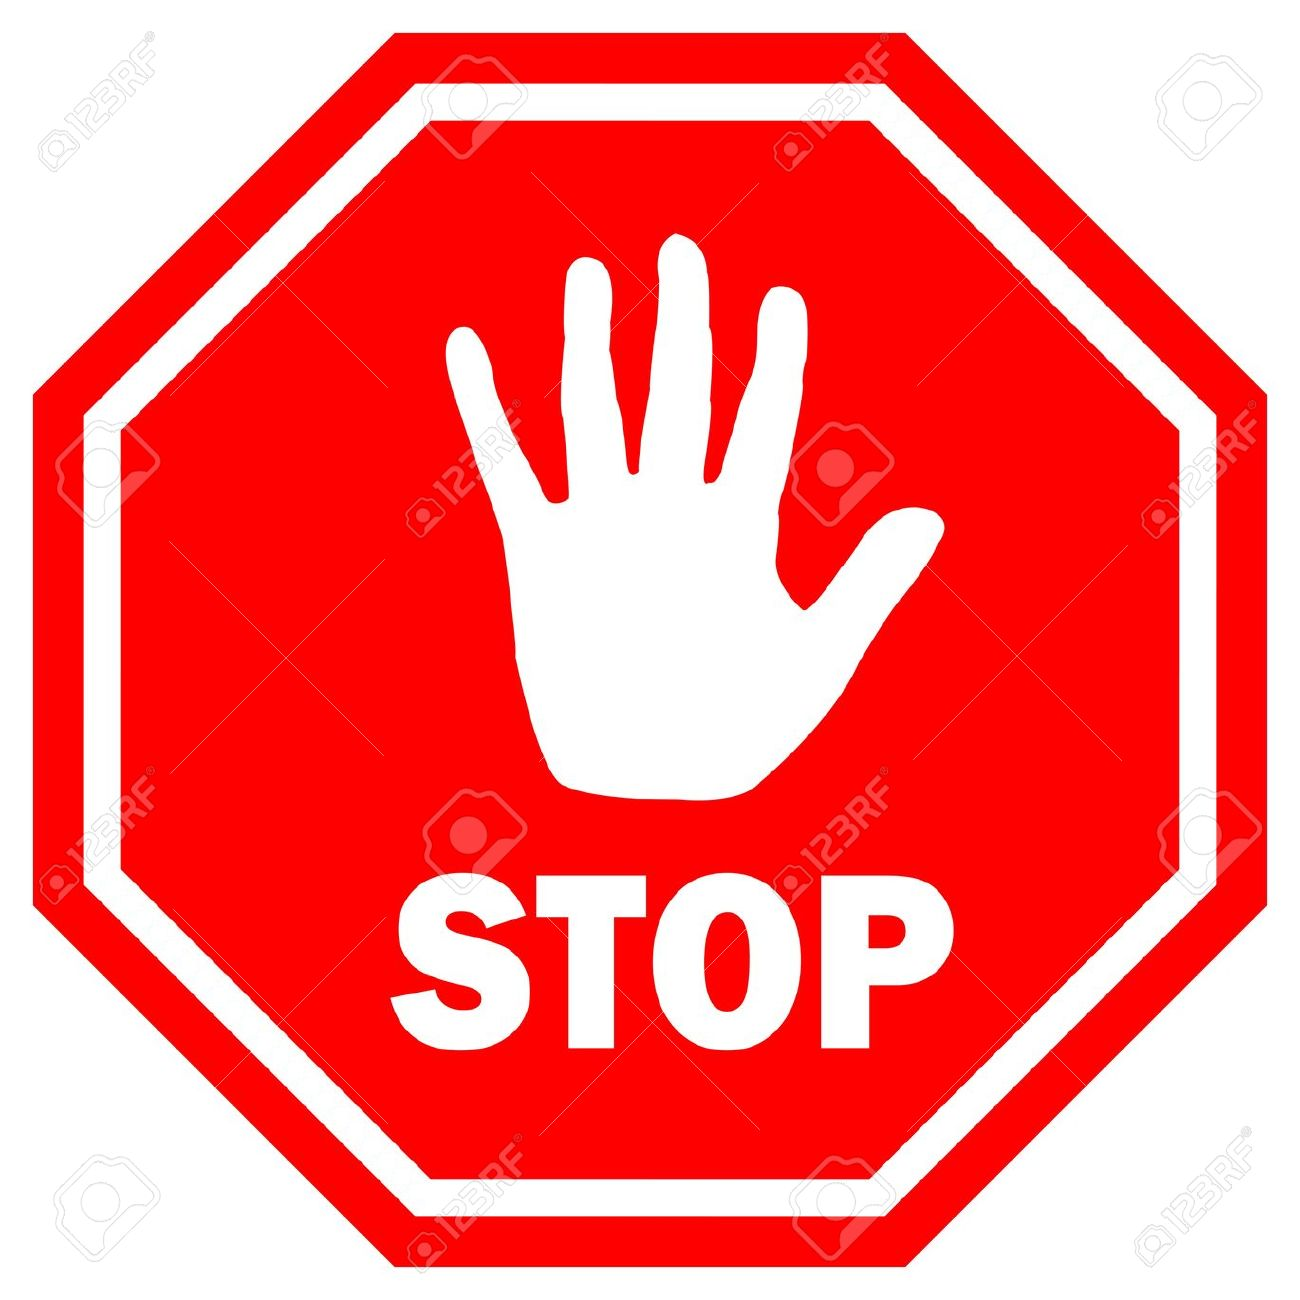 Stop Sign Illustration Royalty Free Cliparts, Vectors, And Stock.